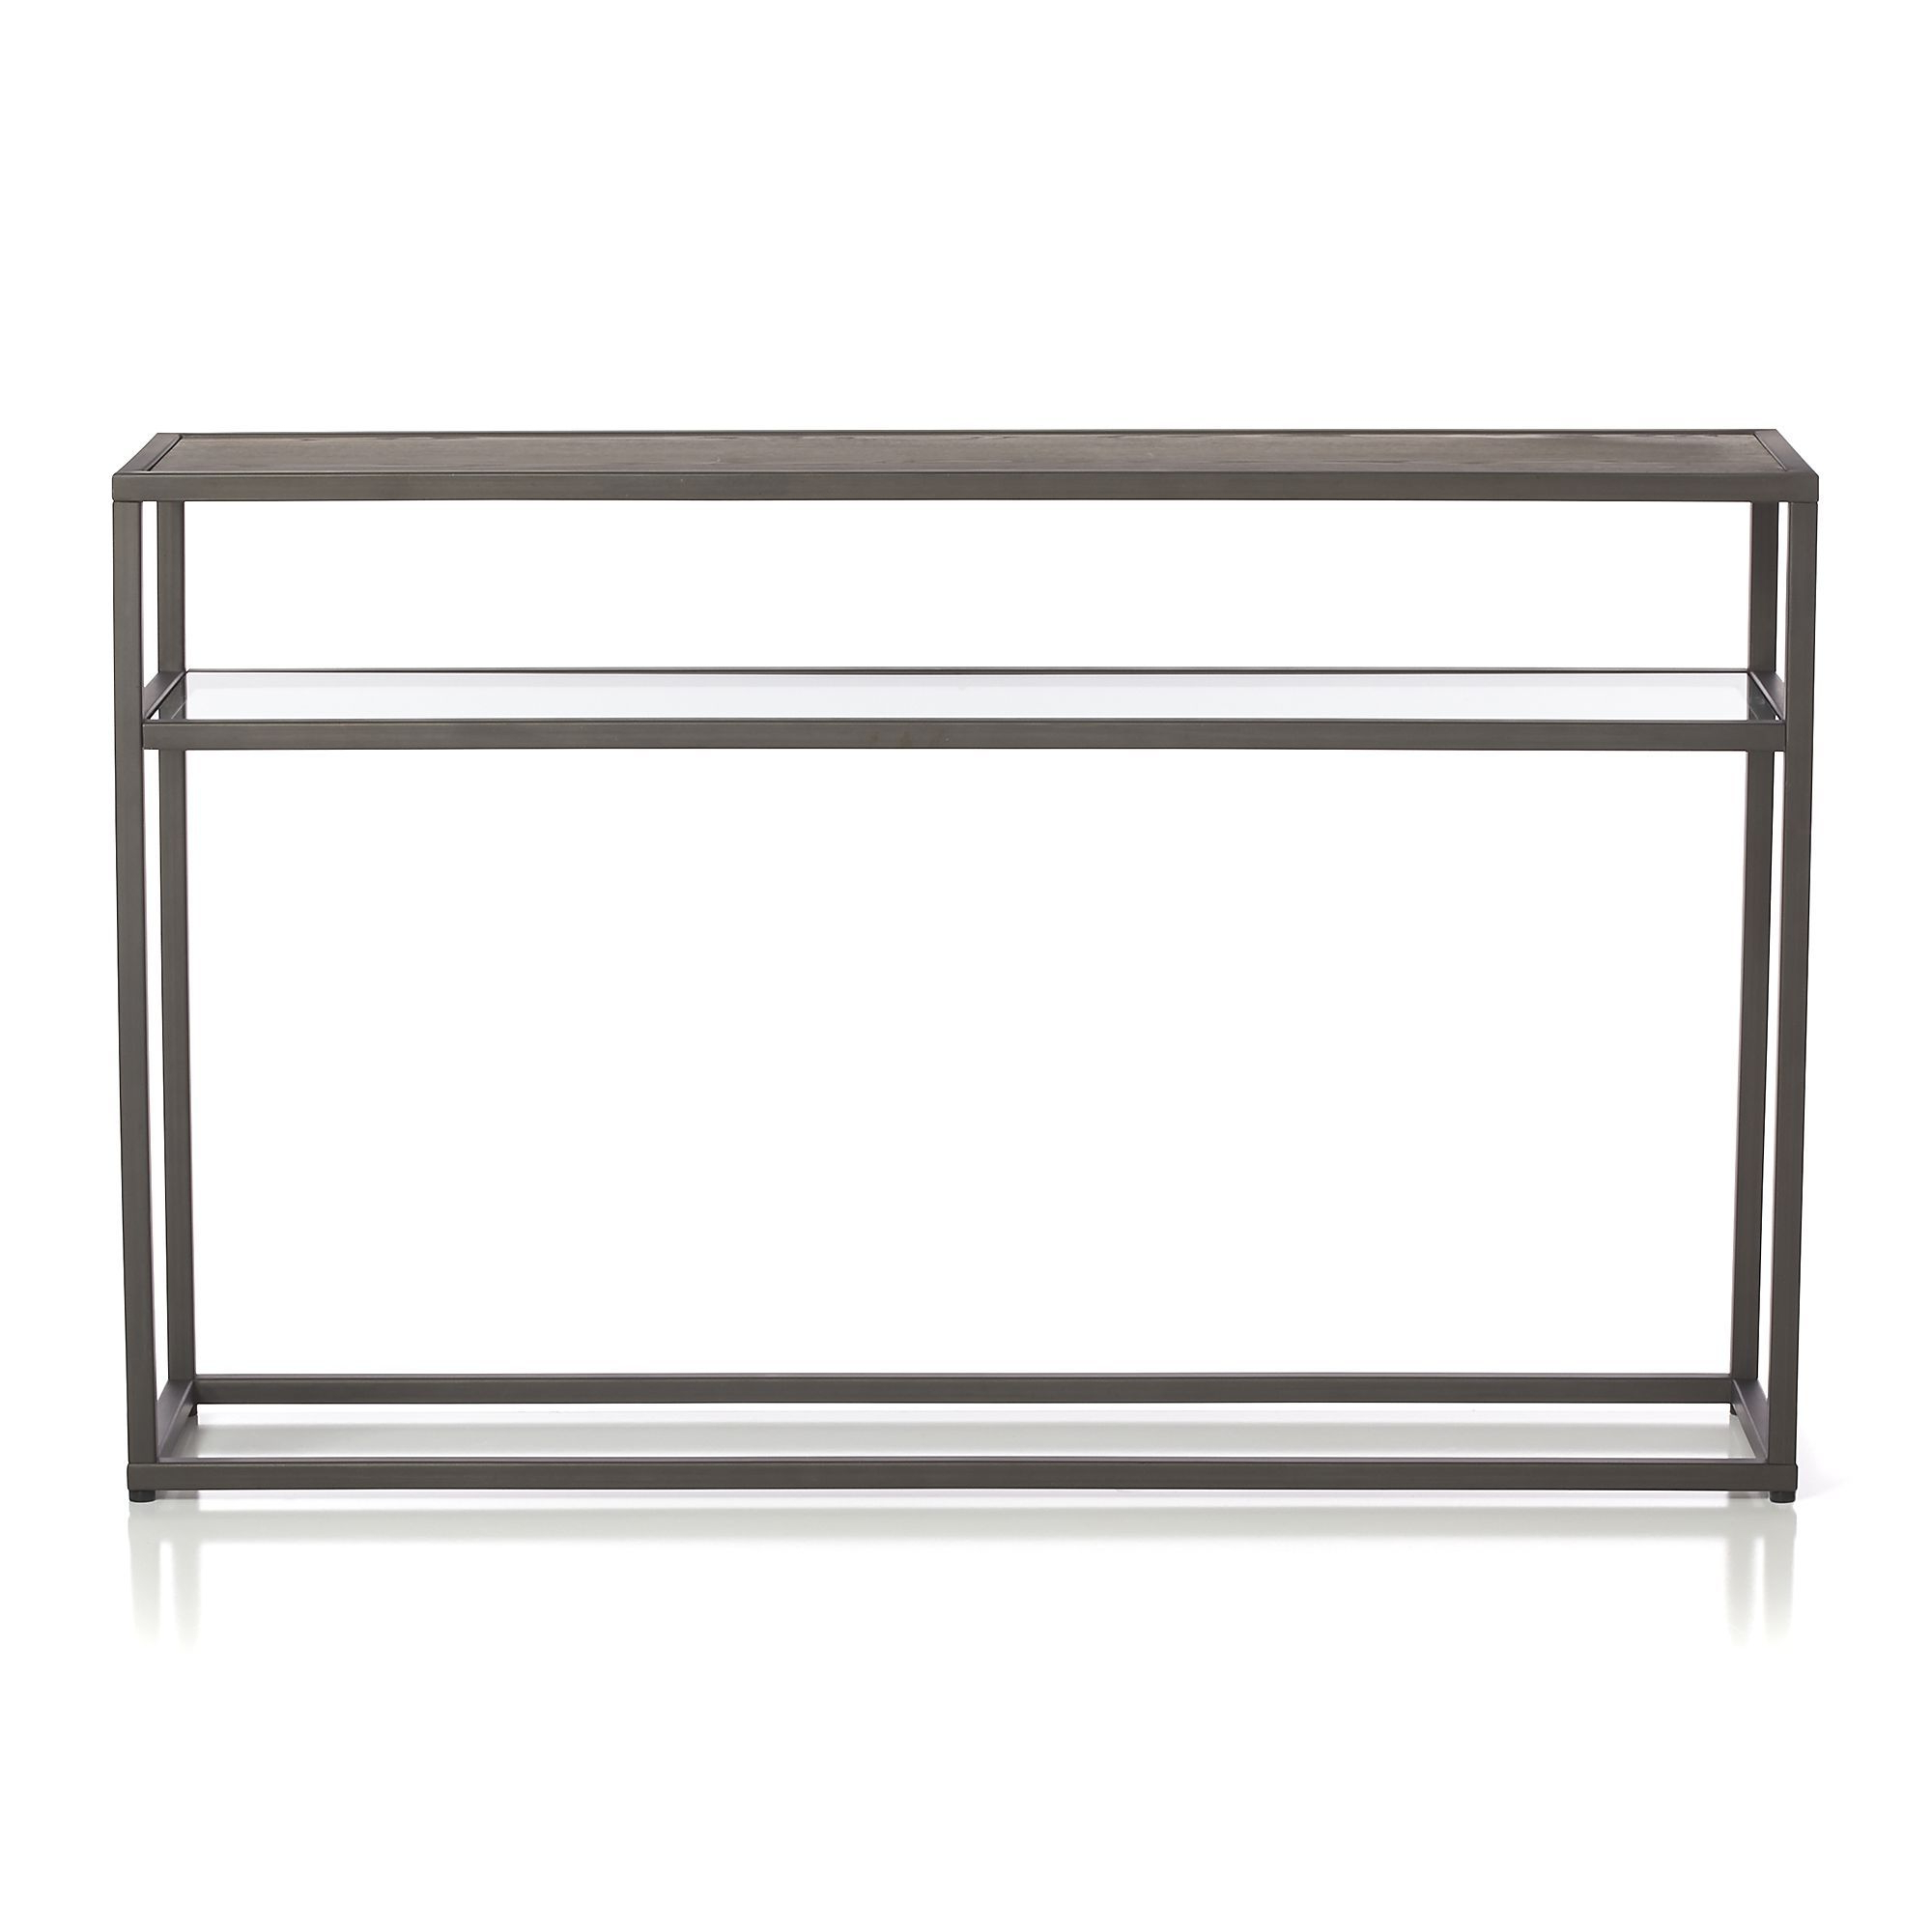 Switch Console Table | Crate And Barrel | Apartment Stuff With Regard To Switch Console Tables (View 2 of 20)